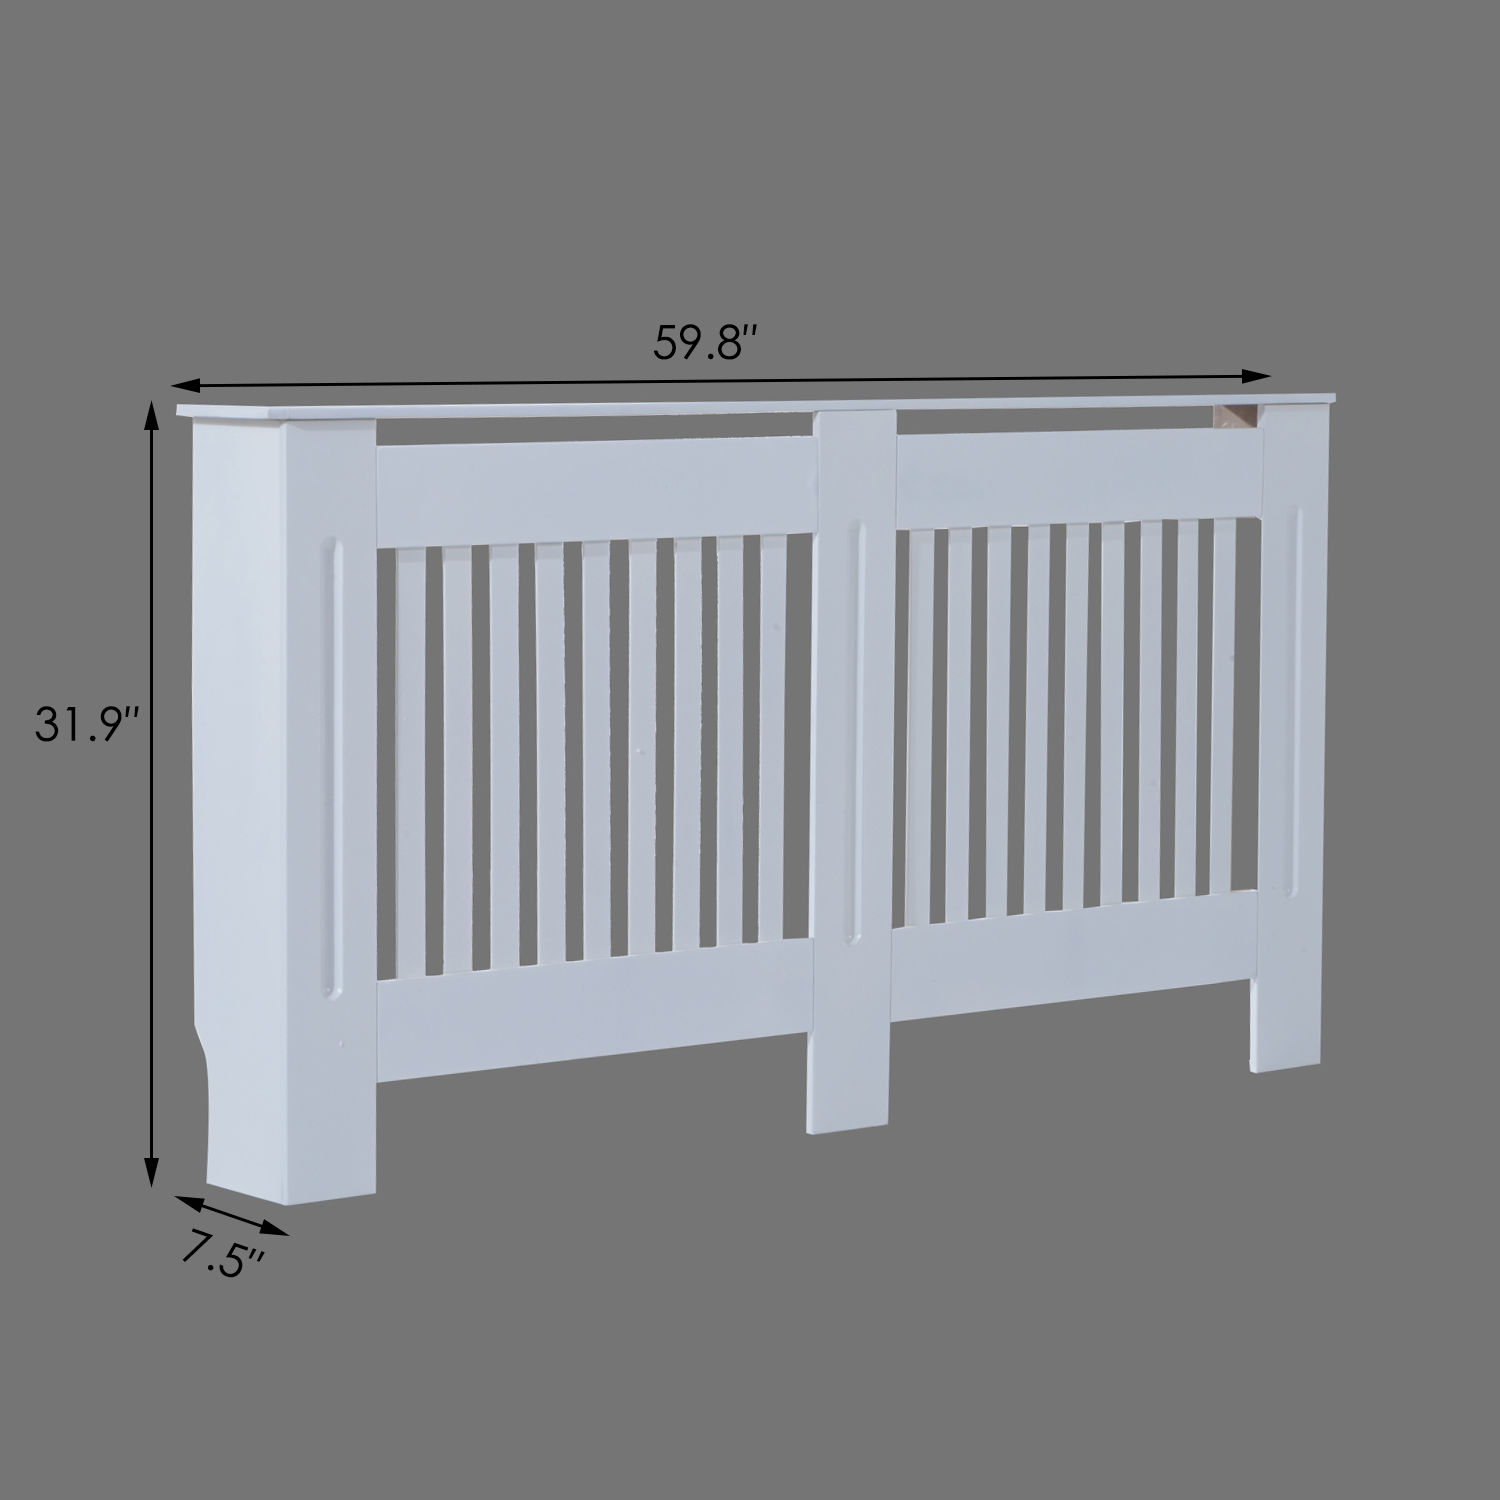 Radiator-Cover-Painted-Slatted-Cabinet-MDF-Vertical-Modern-Style-White-3-Sizes